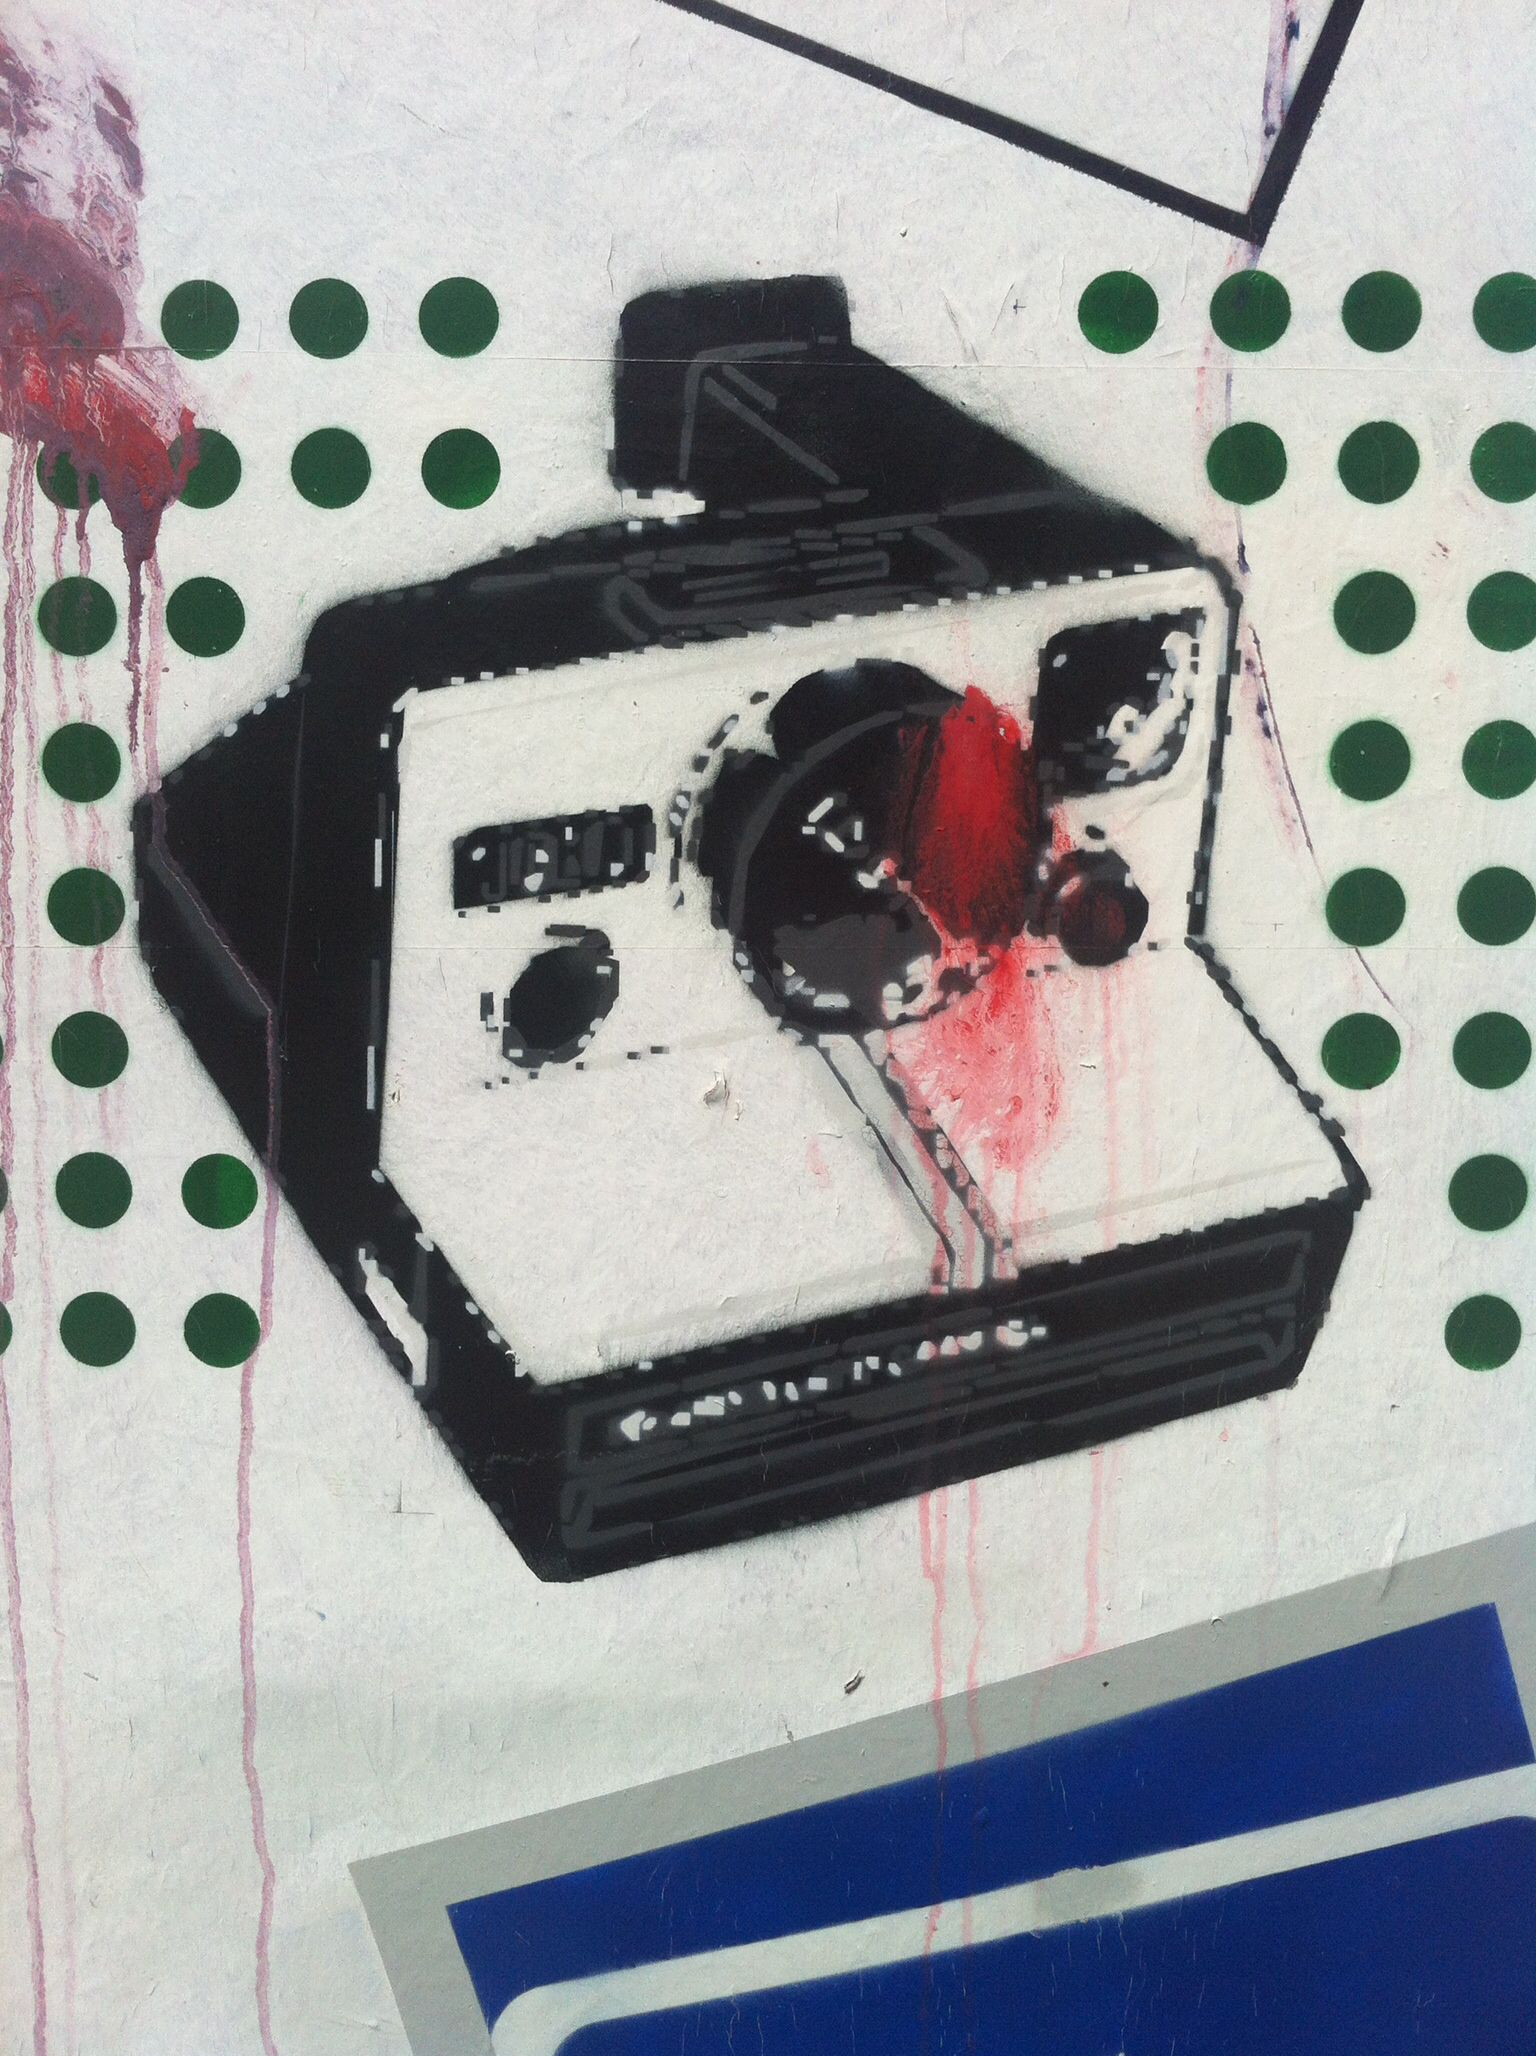 Camera graffiti from Portsmouth